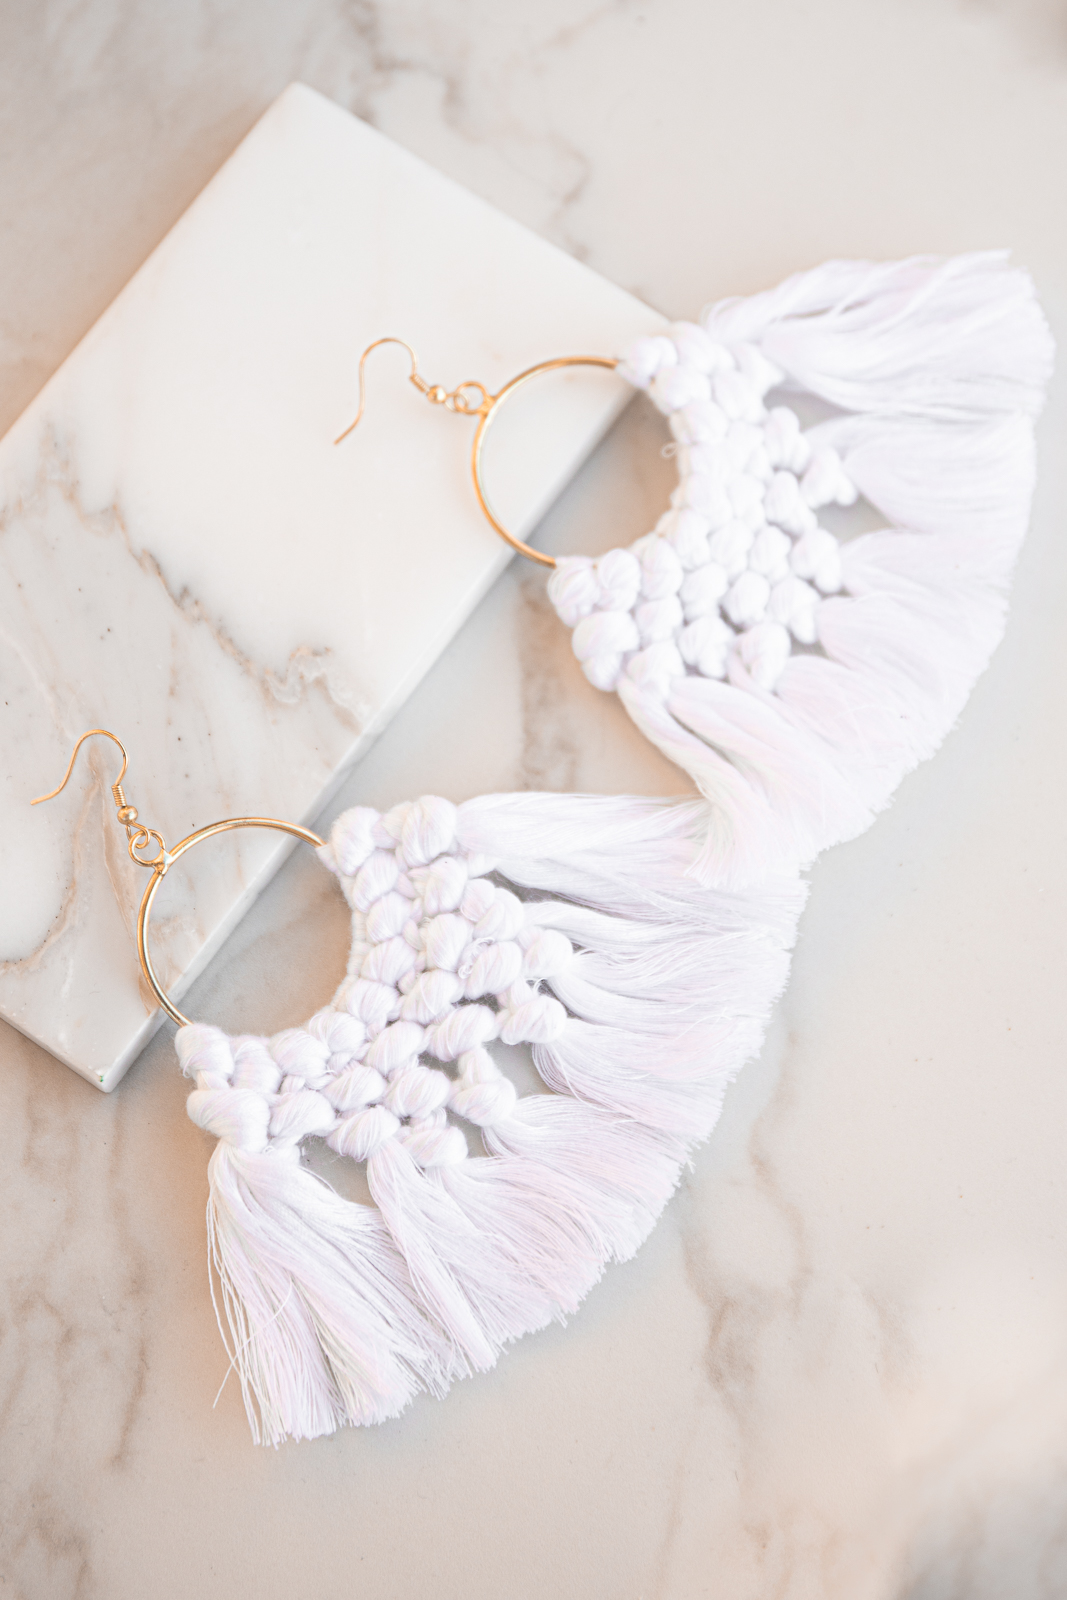 Gold Hoop Earrings with White Tassels and Woven Details